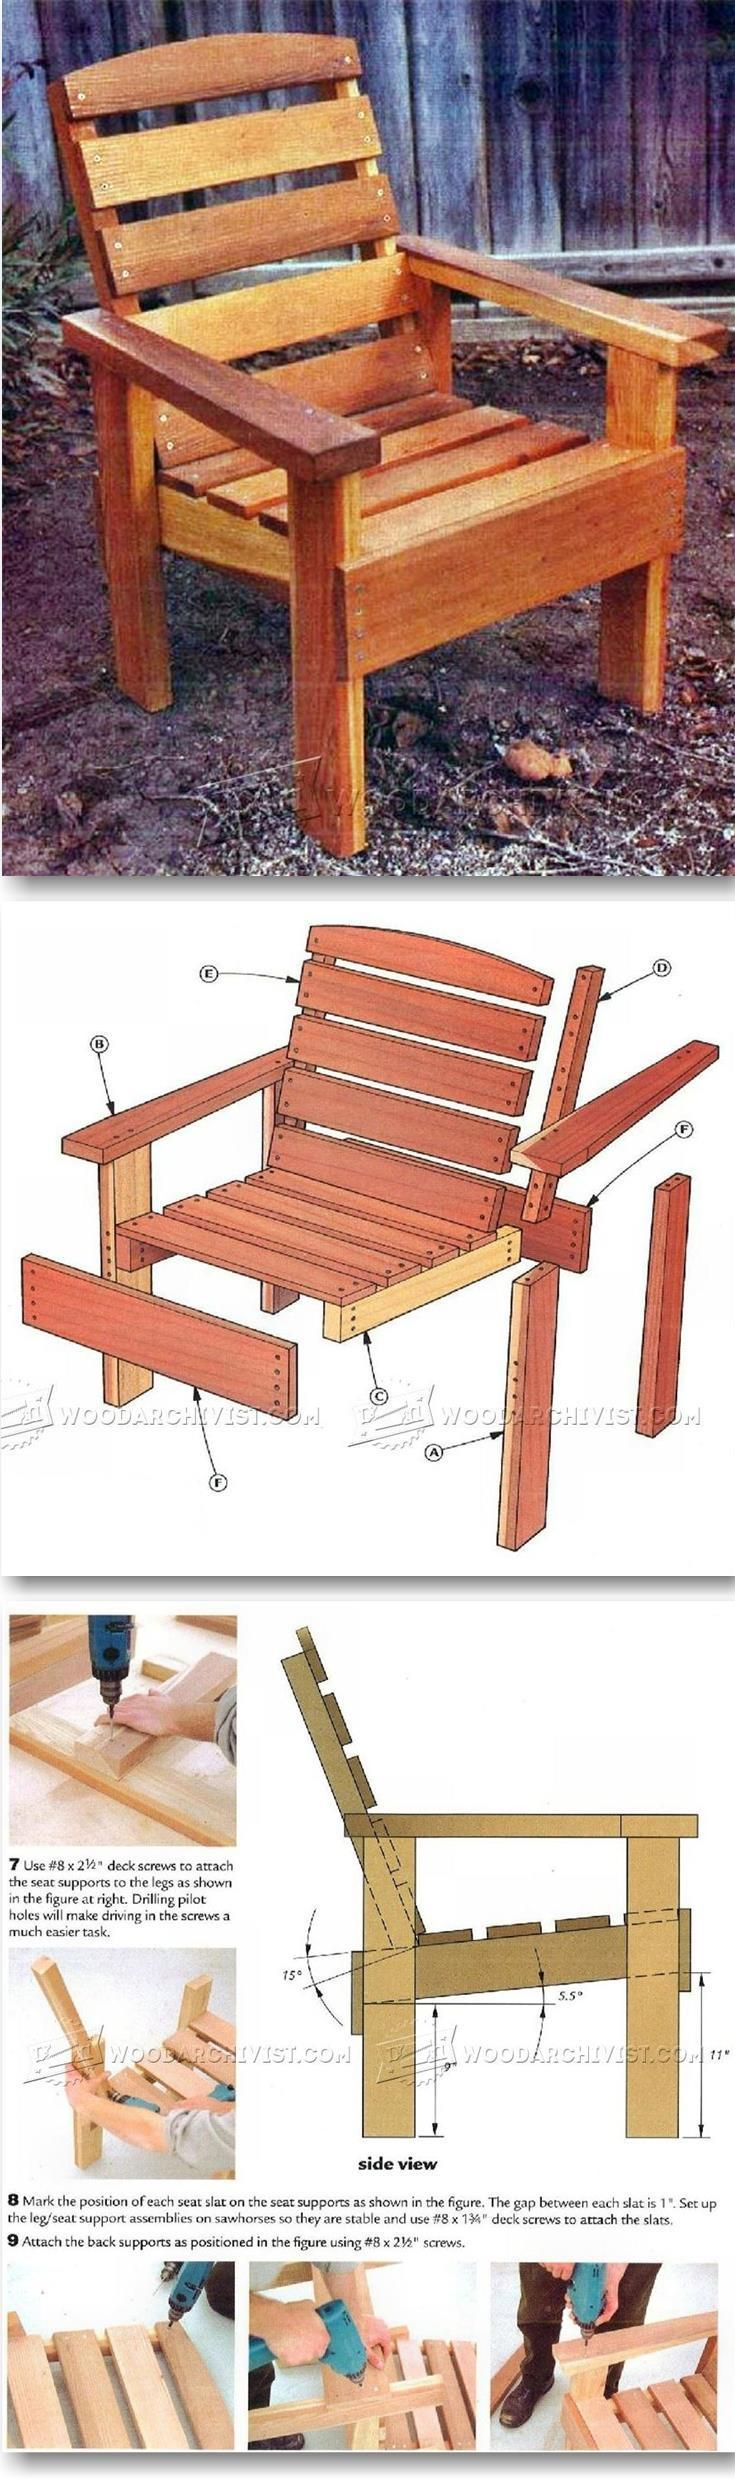 Outdoor furniture plans - Deck Chair Plans Outdoor Furniture Plans Projects Woodarchivist Com